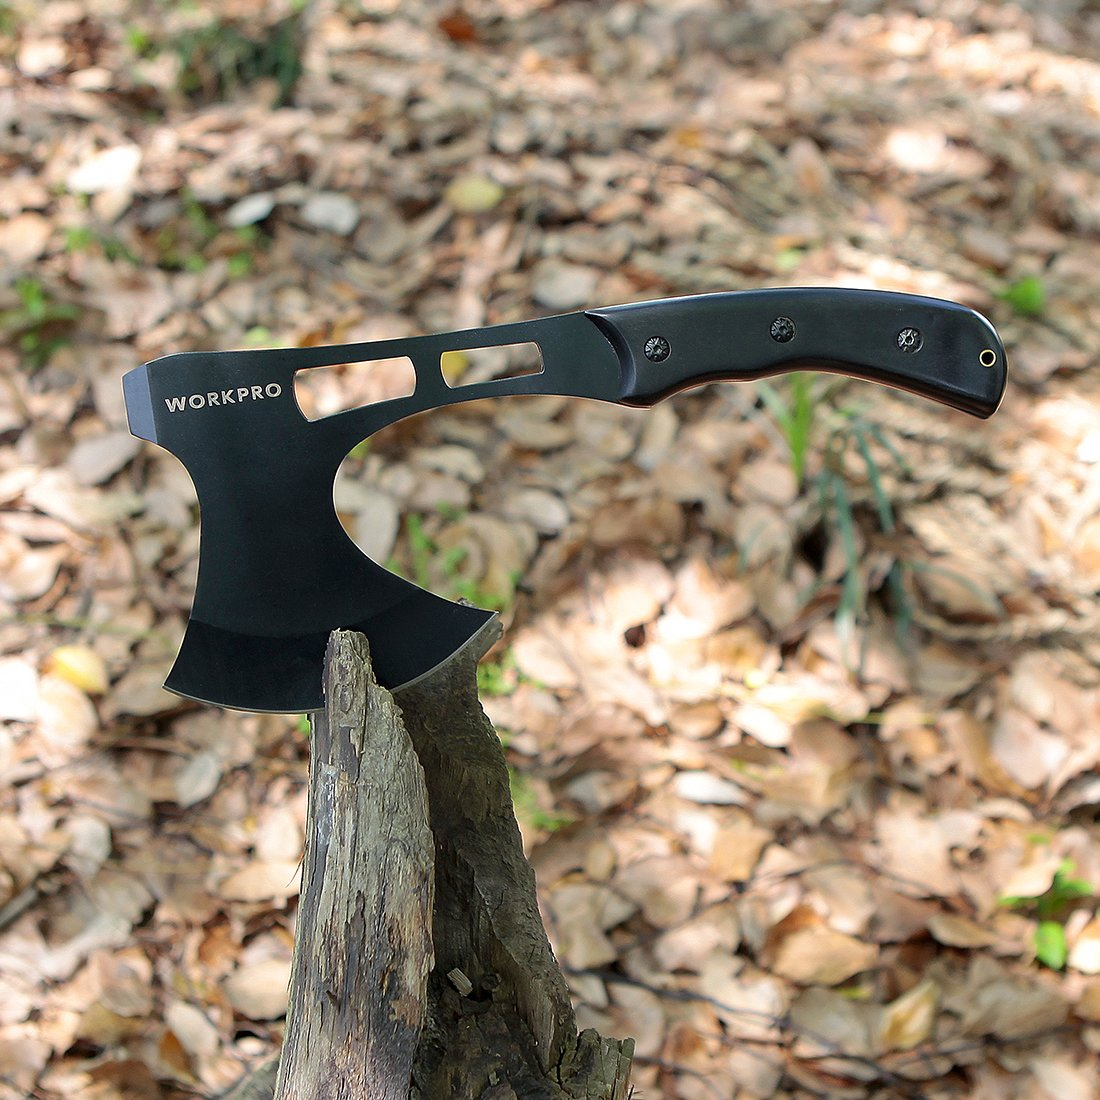 WORKPRO Axe and Fixed Blade Knife Combo Set Full Tang Wood Handle for Outdoor Camping Survival Hunting, Nylon Sheath Included by WORKPRO (Image #7)